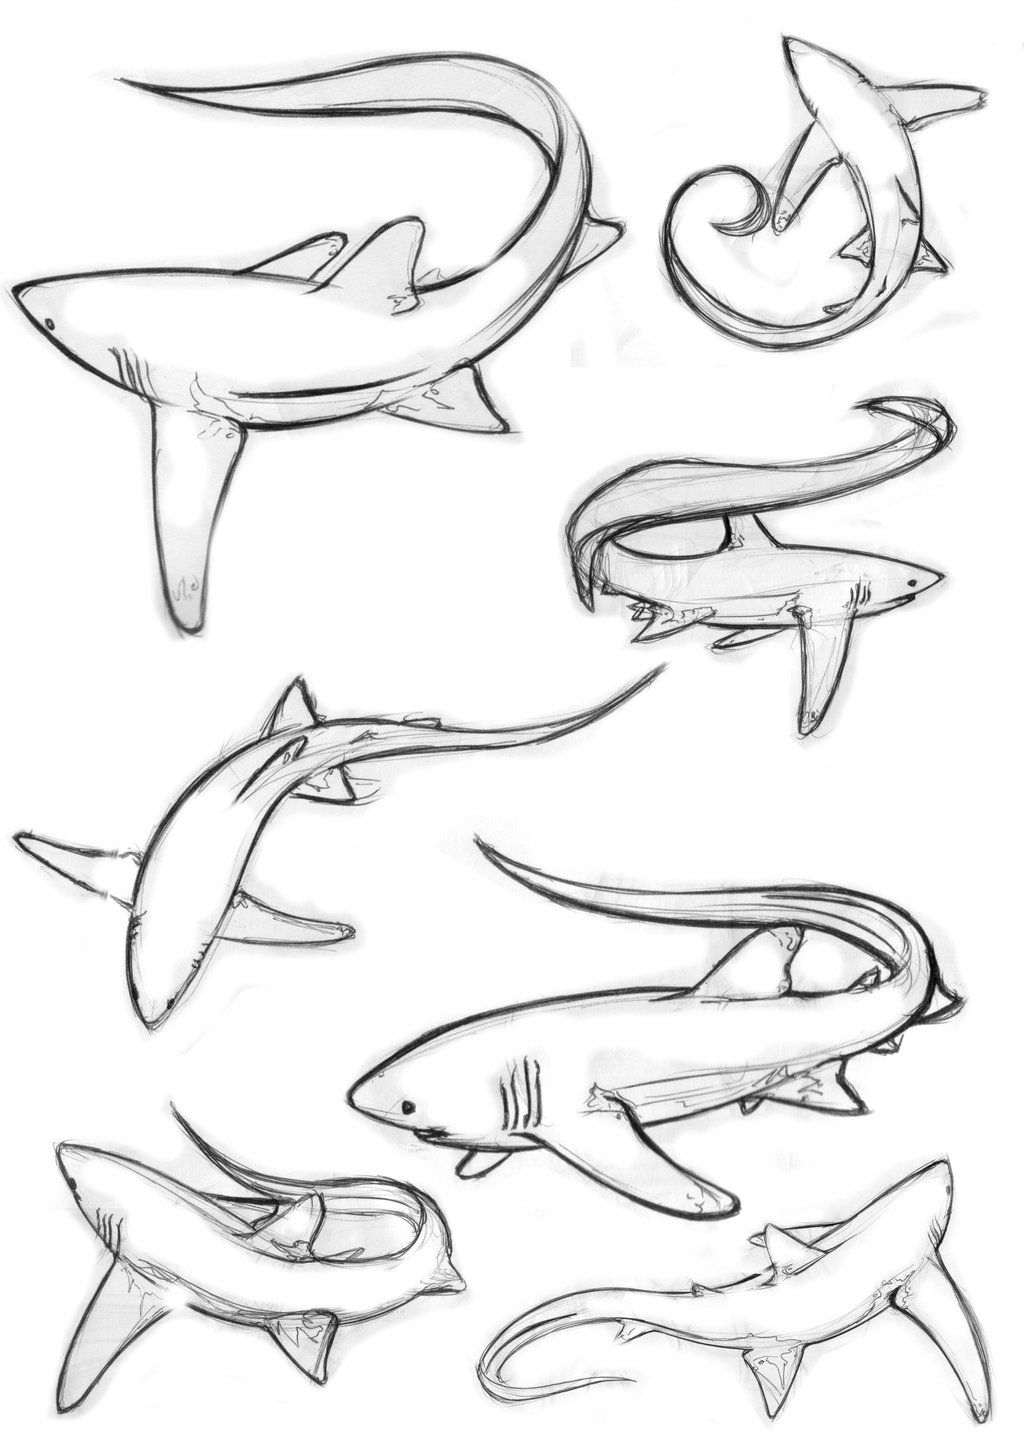 Bull Shark Coloring Pages Pictures Imagixs Kidscolorful Com Shark Coloring Pages Shark Art Shark Tattoos